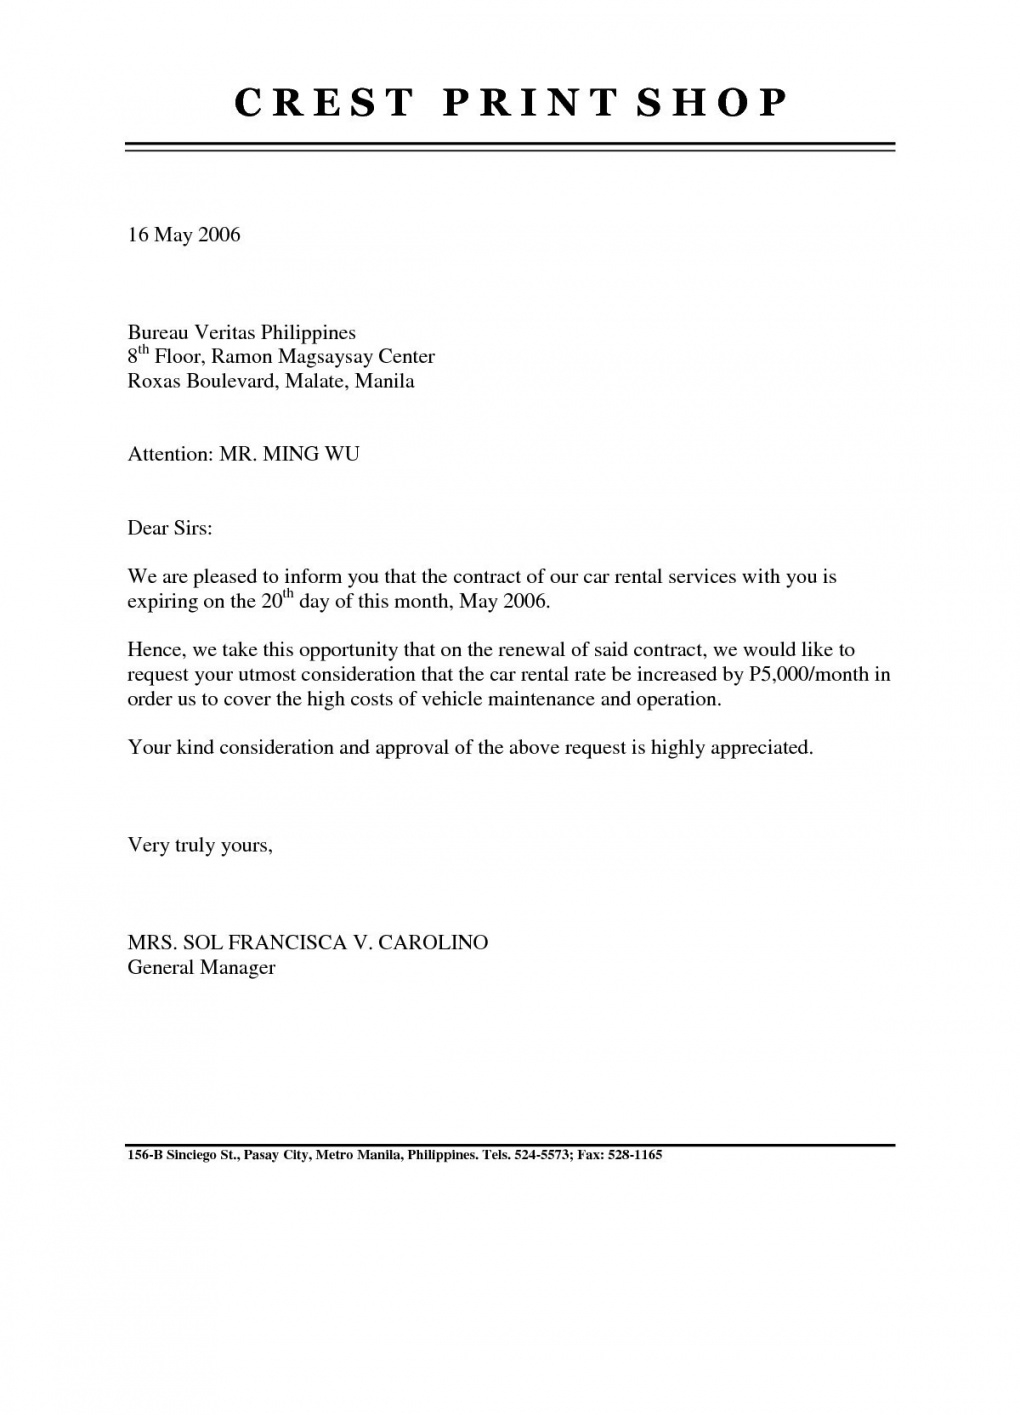 editable insurance renewal letter template samples  letter template collection vehicle service reminder letter template doc